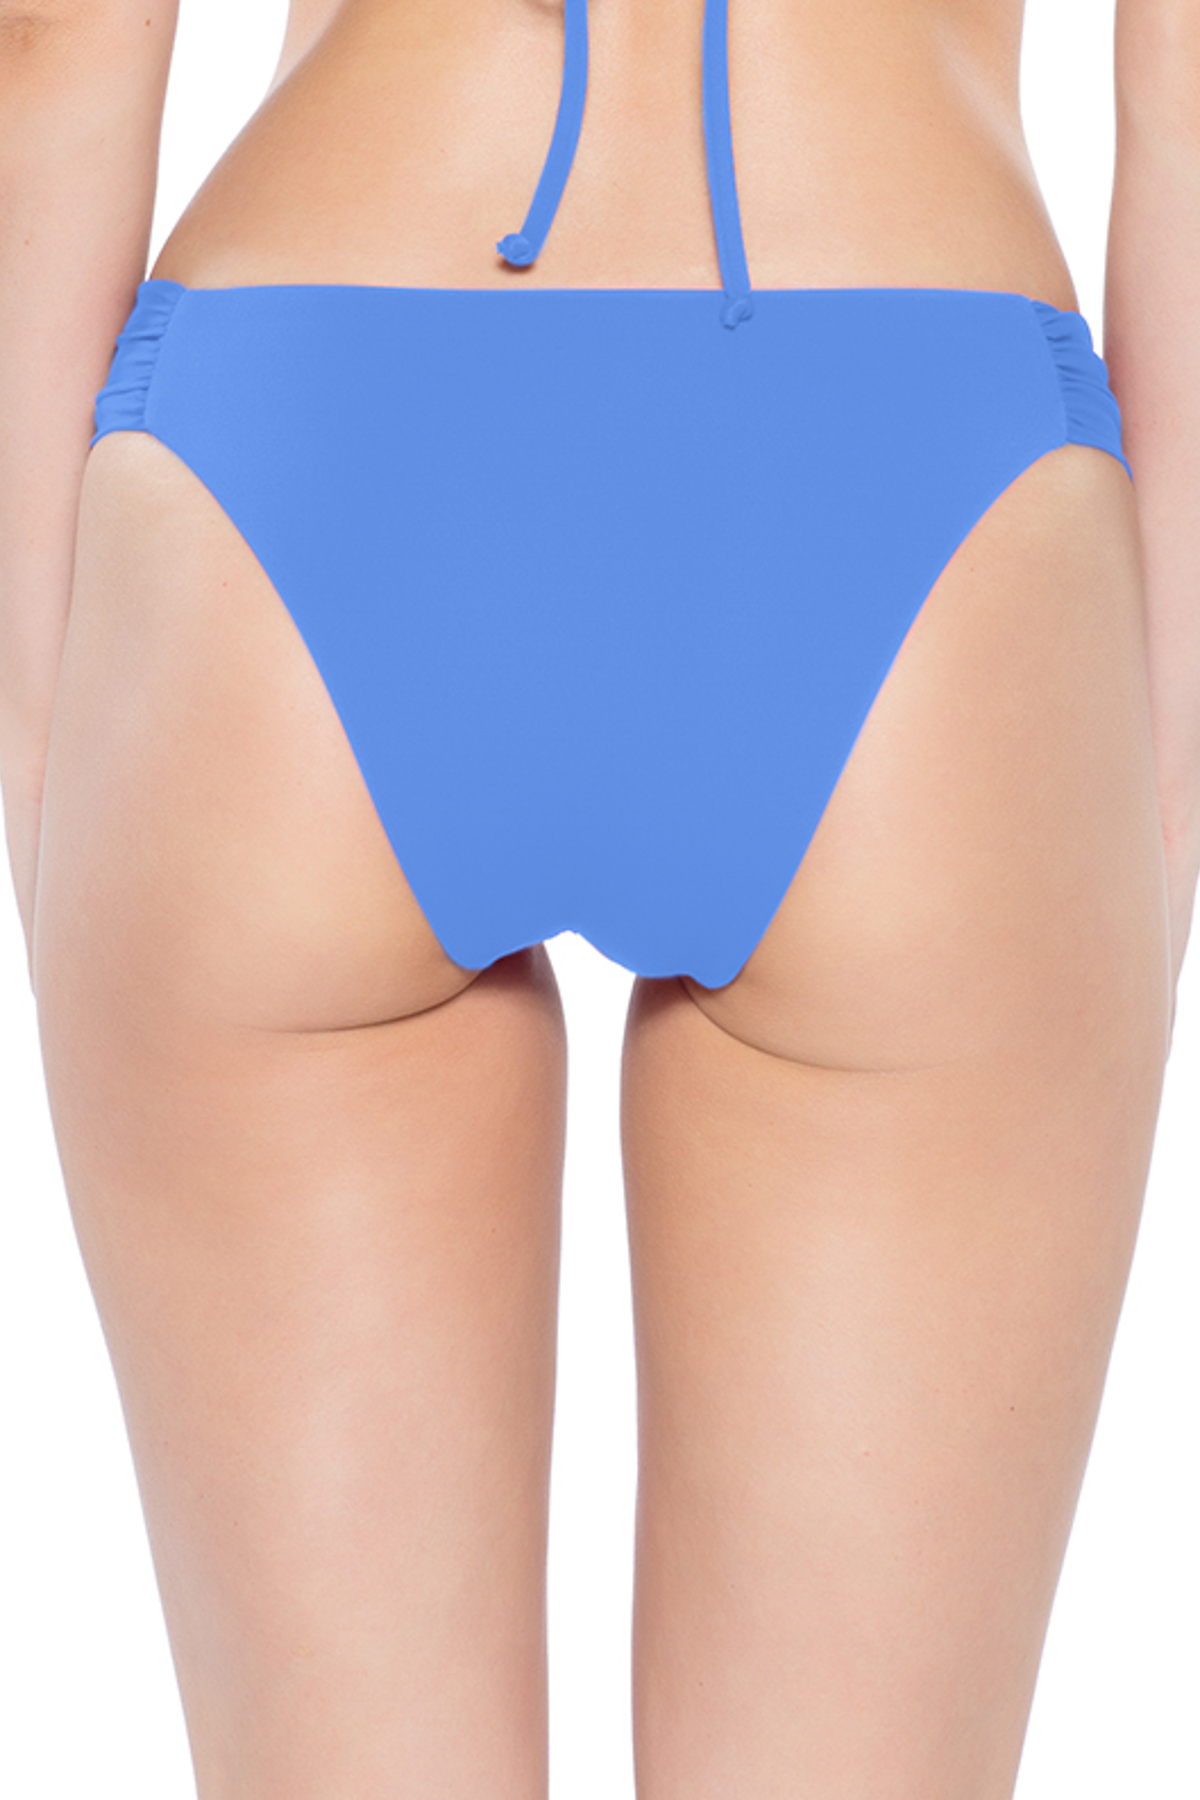 Coastal Tab Side Brazilian Bikini Bottom - Skylight 10